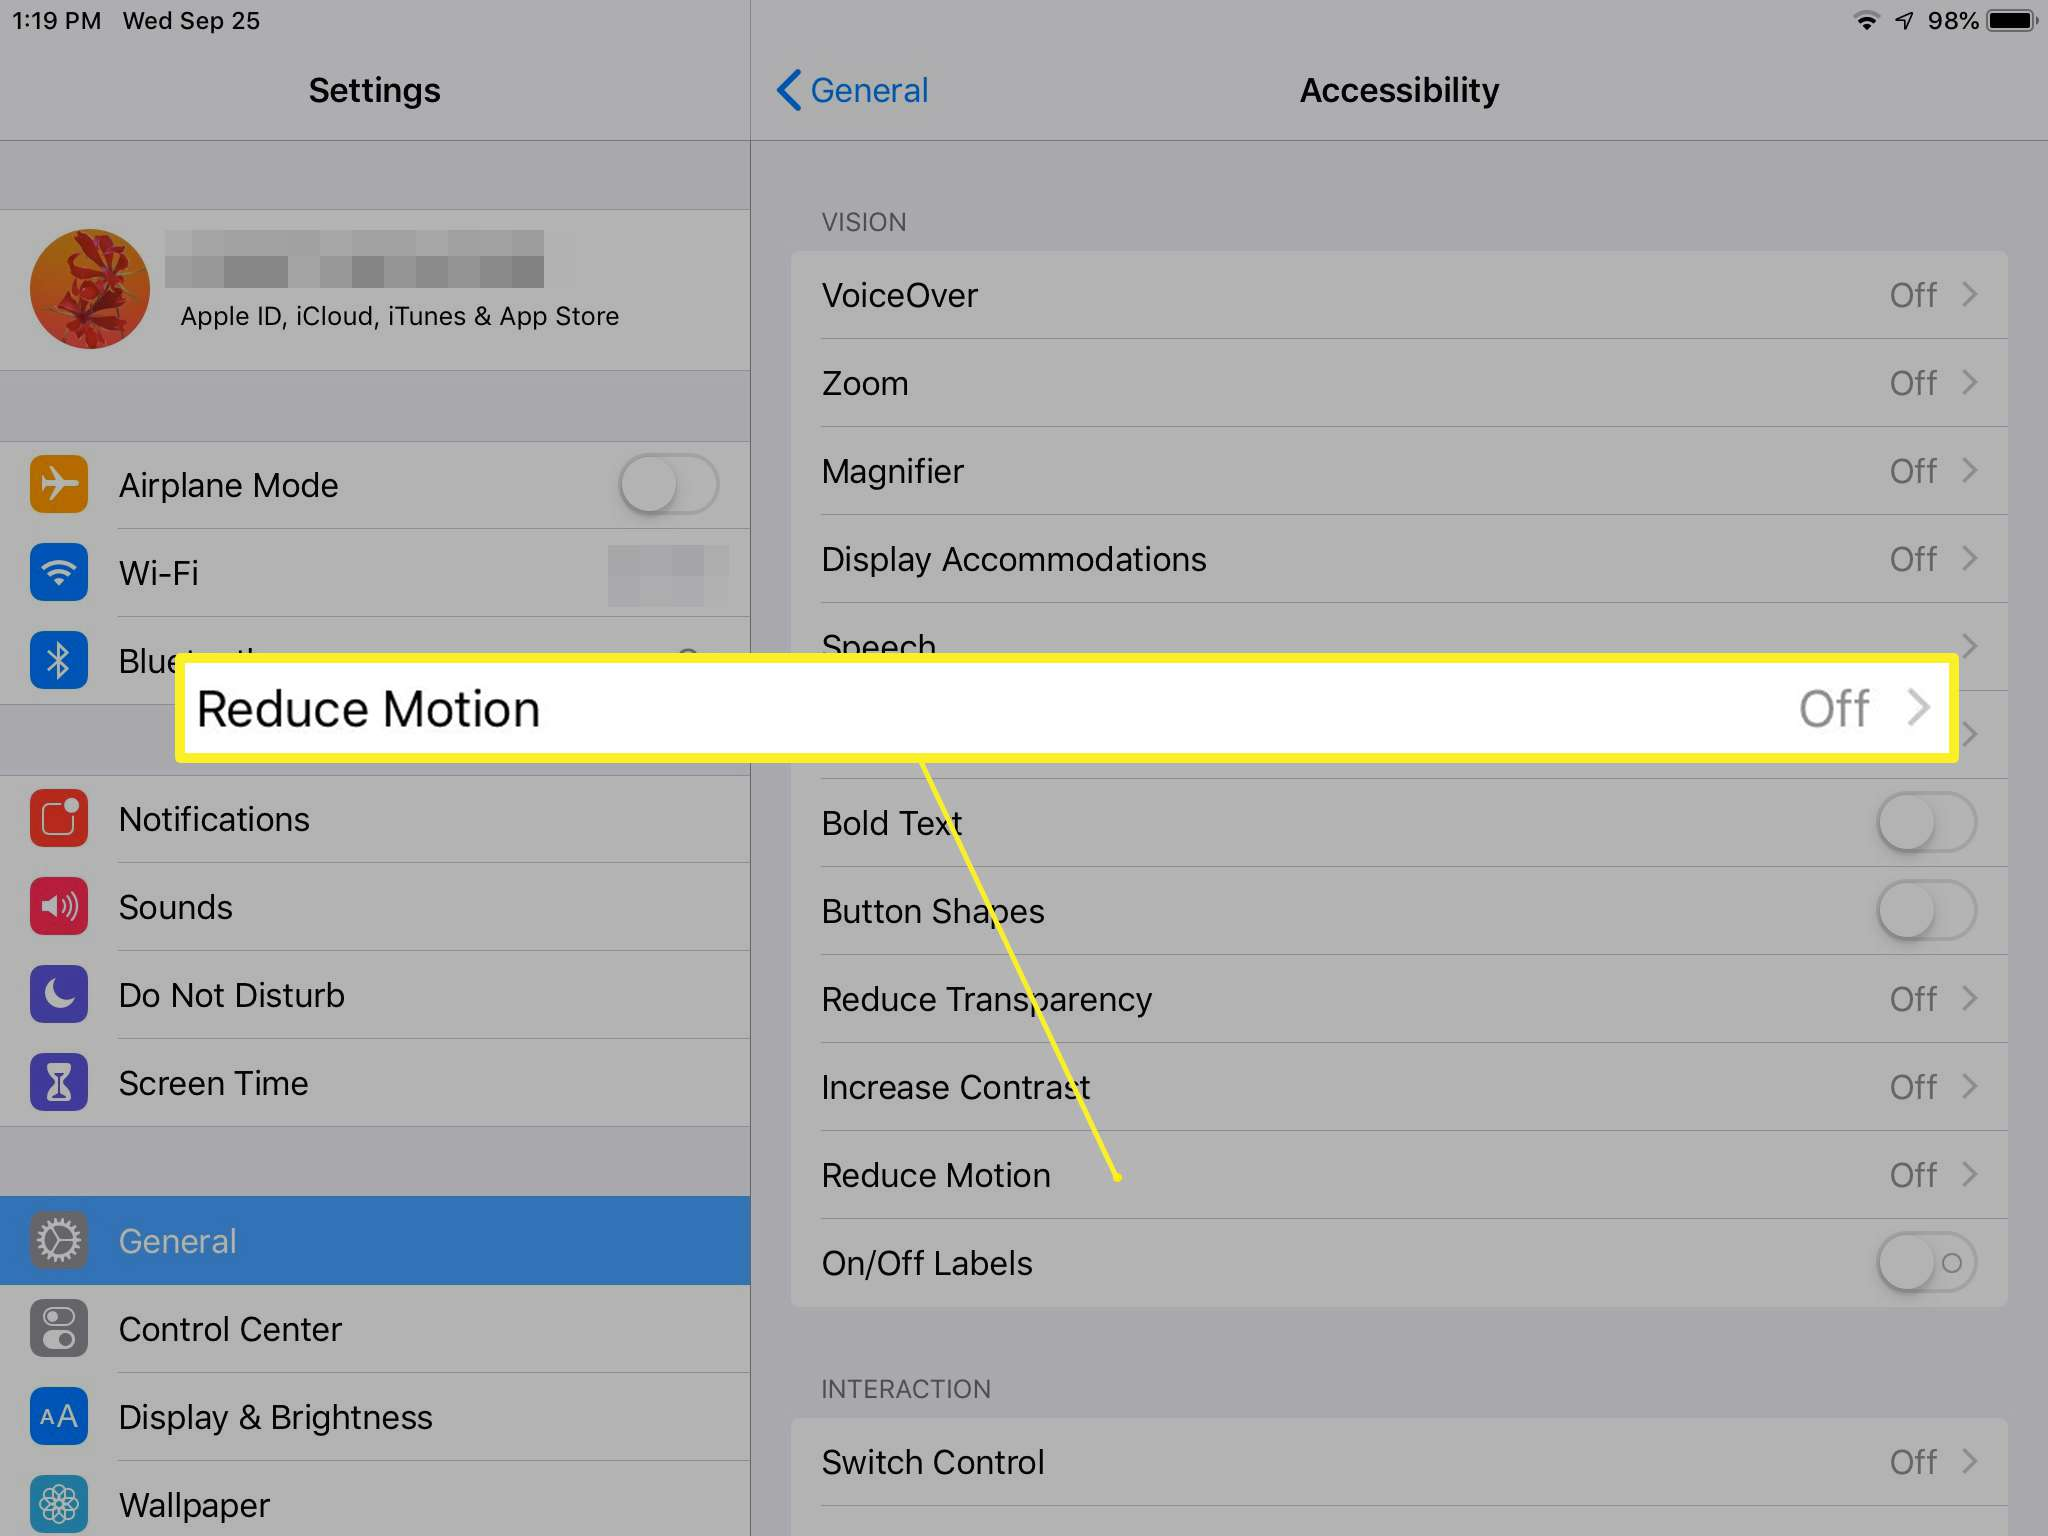 Accessibility settings showing Reduce Motion option on iPad